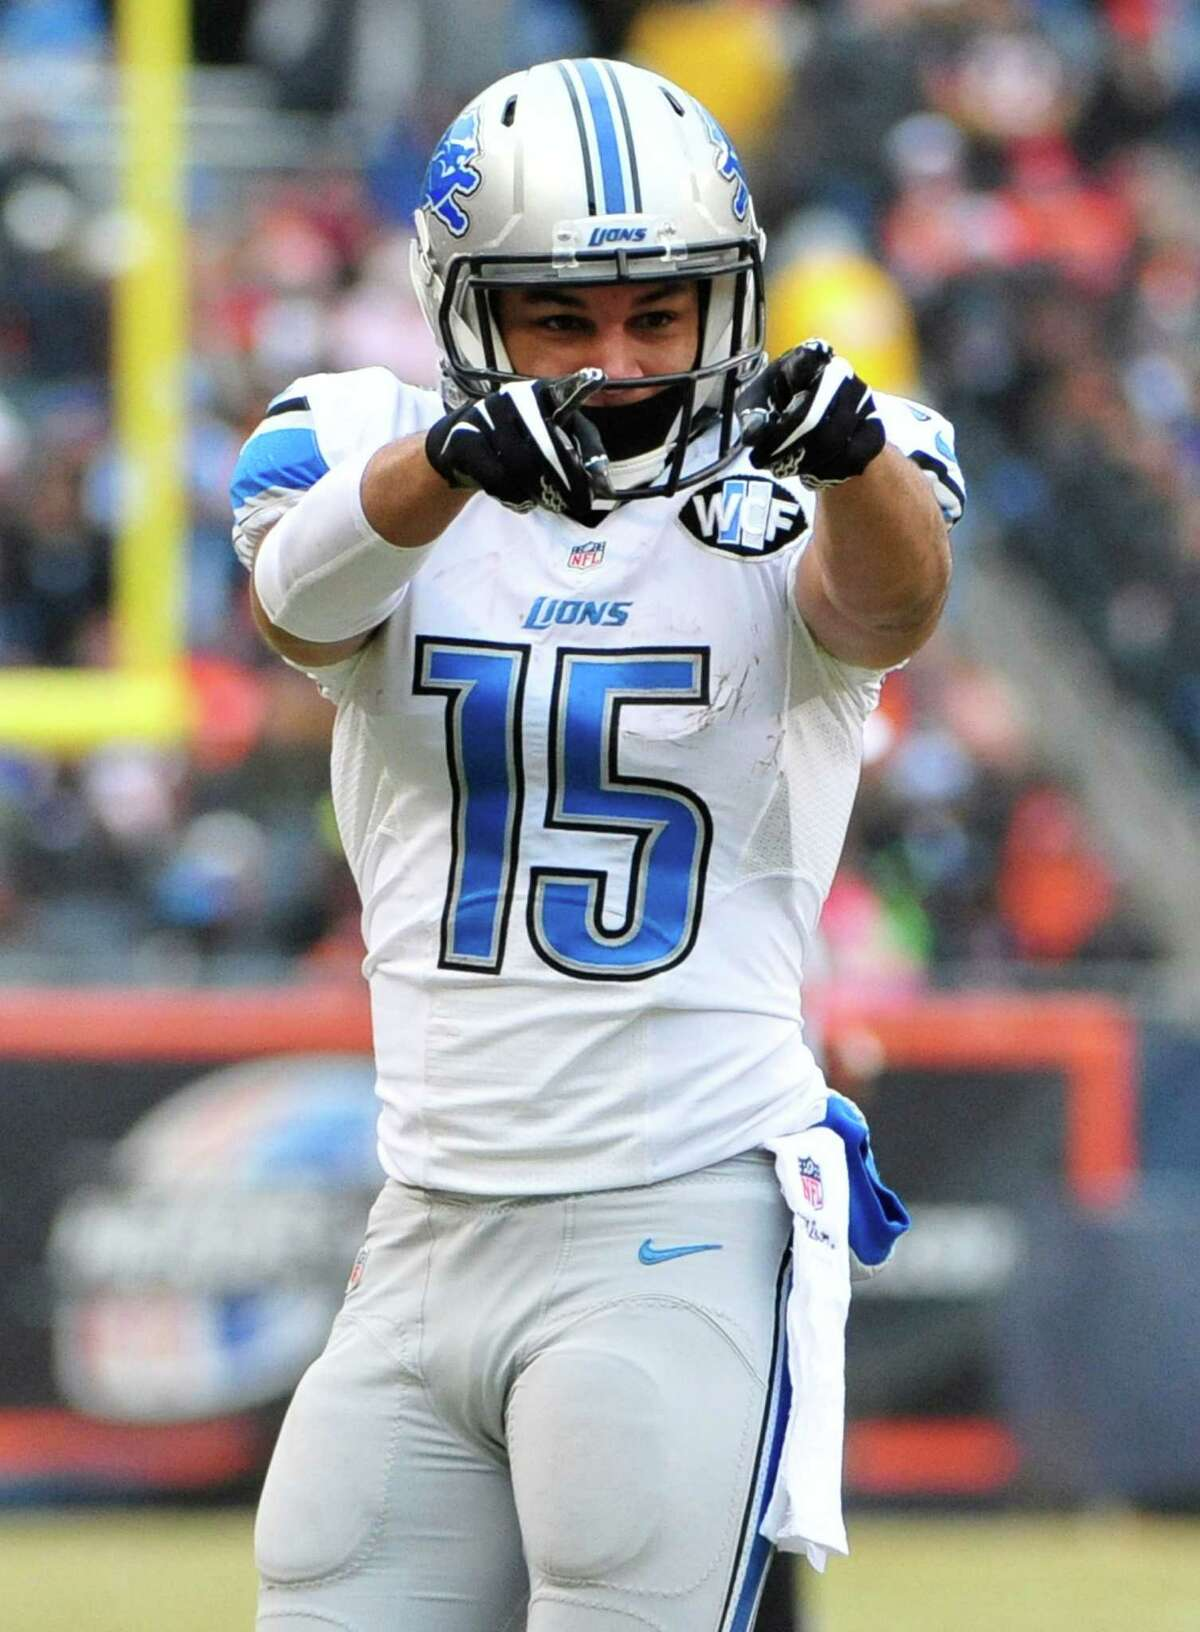 CHICAGO, IL - DECEMBER 21: Golden Tate #15 of the Detroit Lions points after making a first down during the second quarter of a game against the Chicago Bears at Soldier Field on December 21, 2014 in Chicago, Illinois.